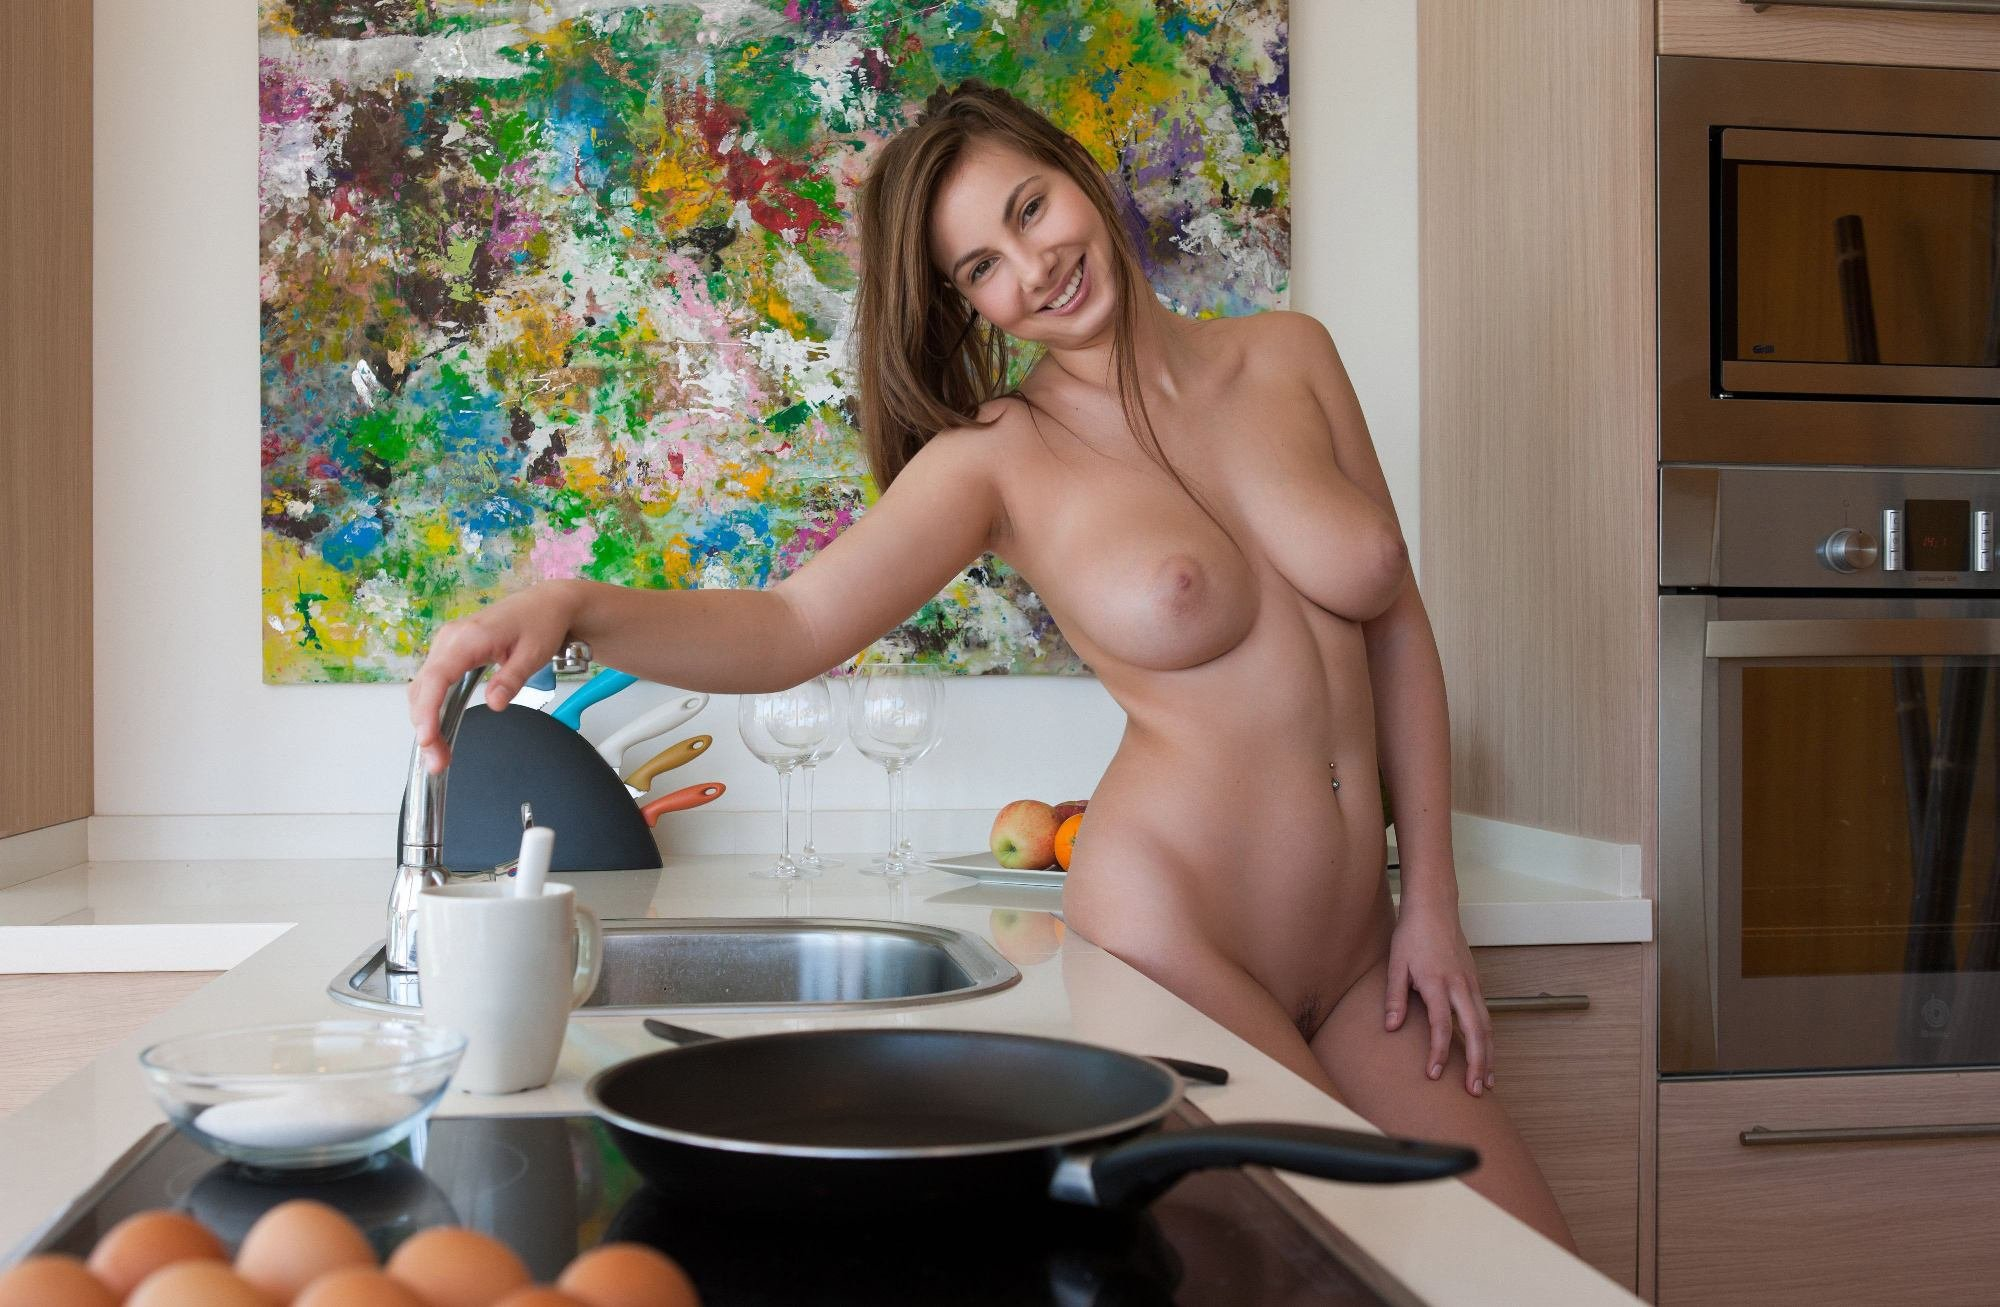 stone-nude-boobs-in-food-naked-women